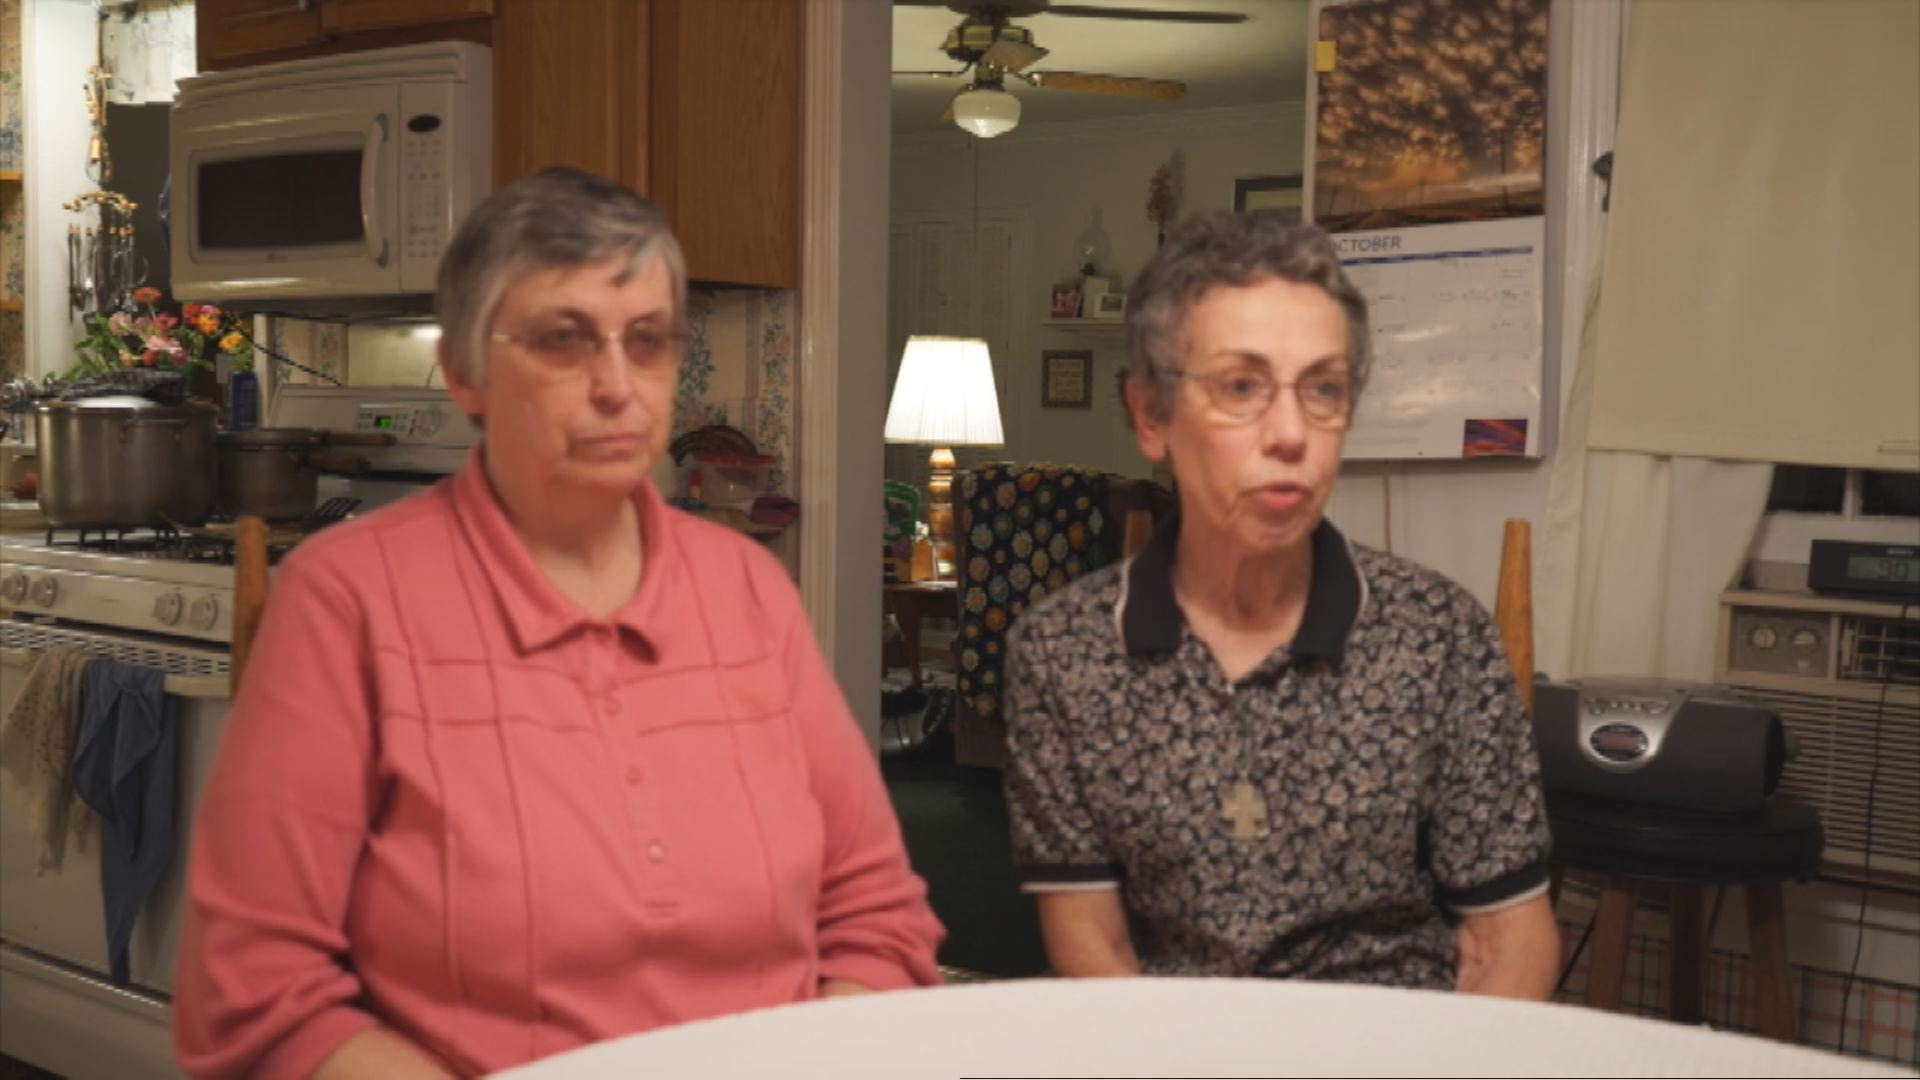 Nuns Killed in Durant Sisters of Charity of Nazareth_208350